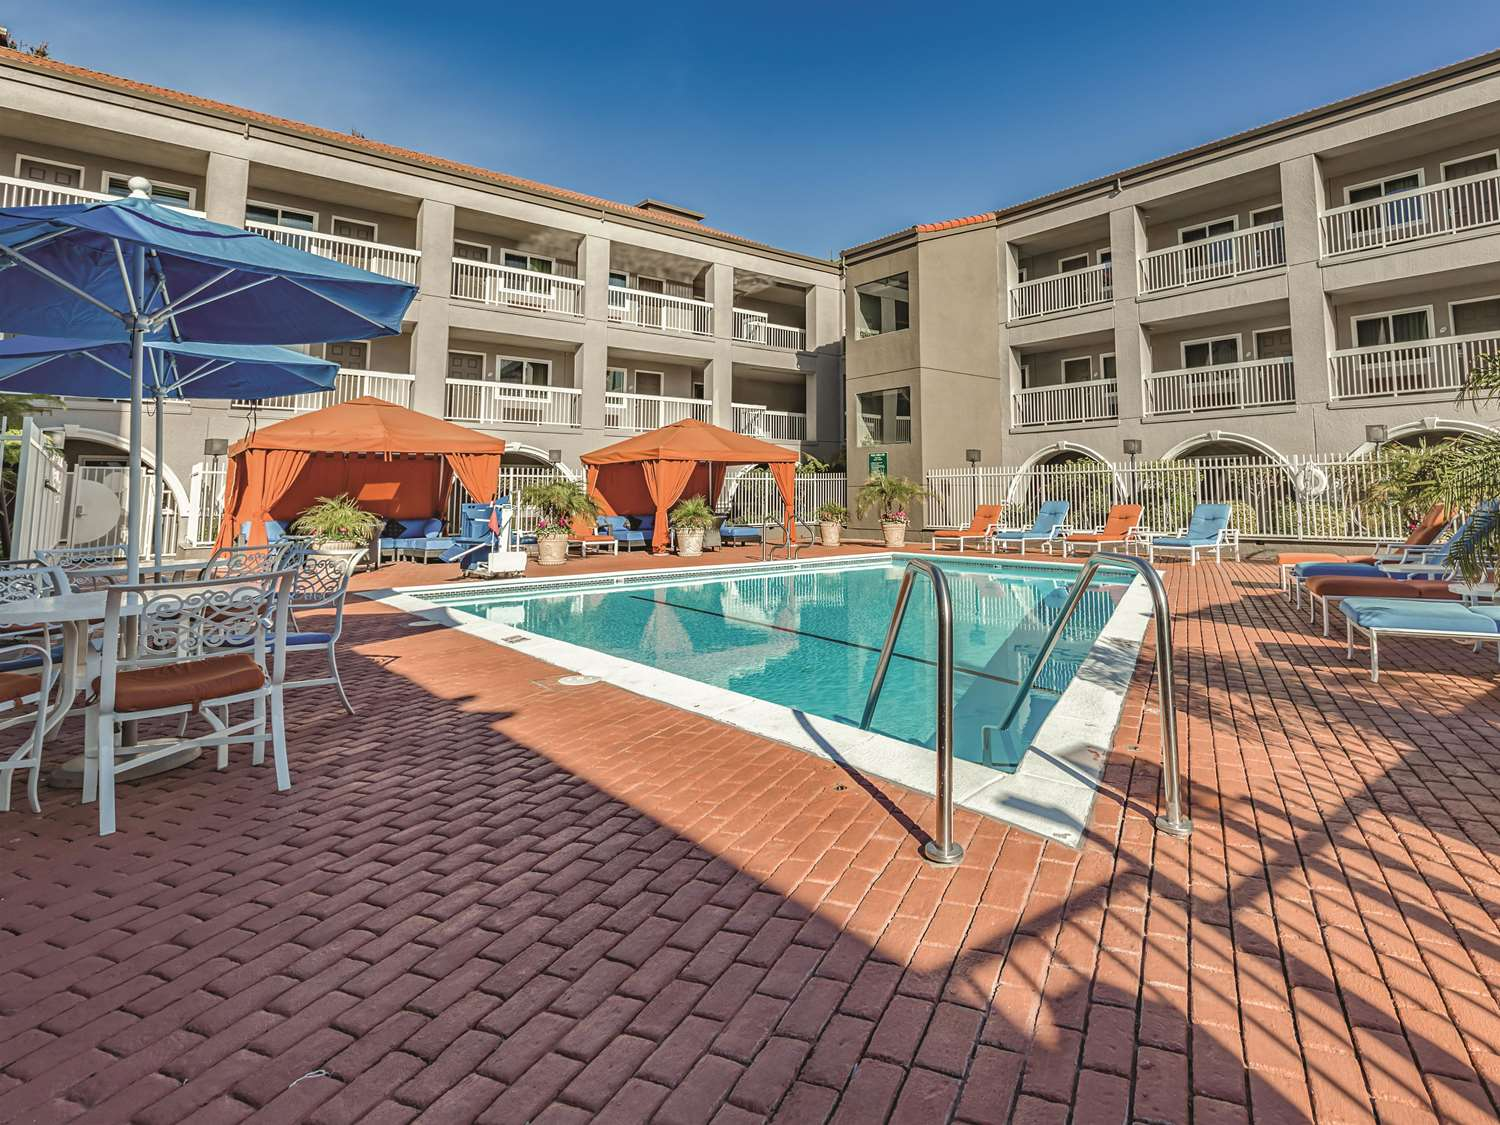 Pool - La Quinta Inn & Suites SFO Airport West Millbrae